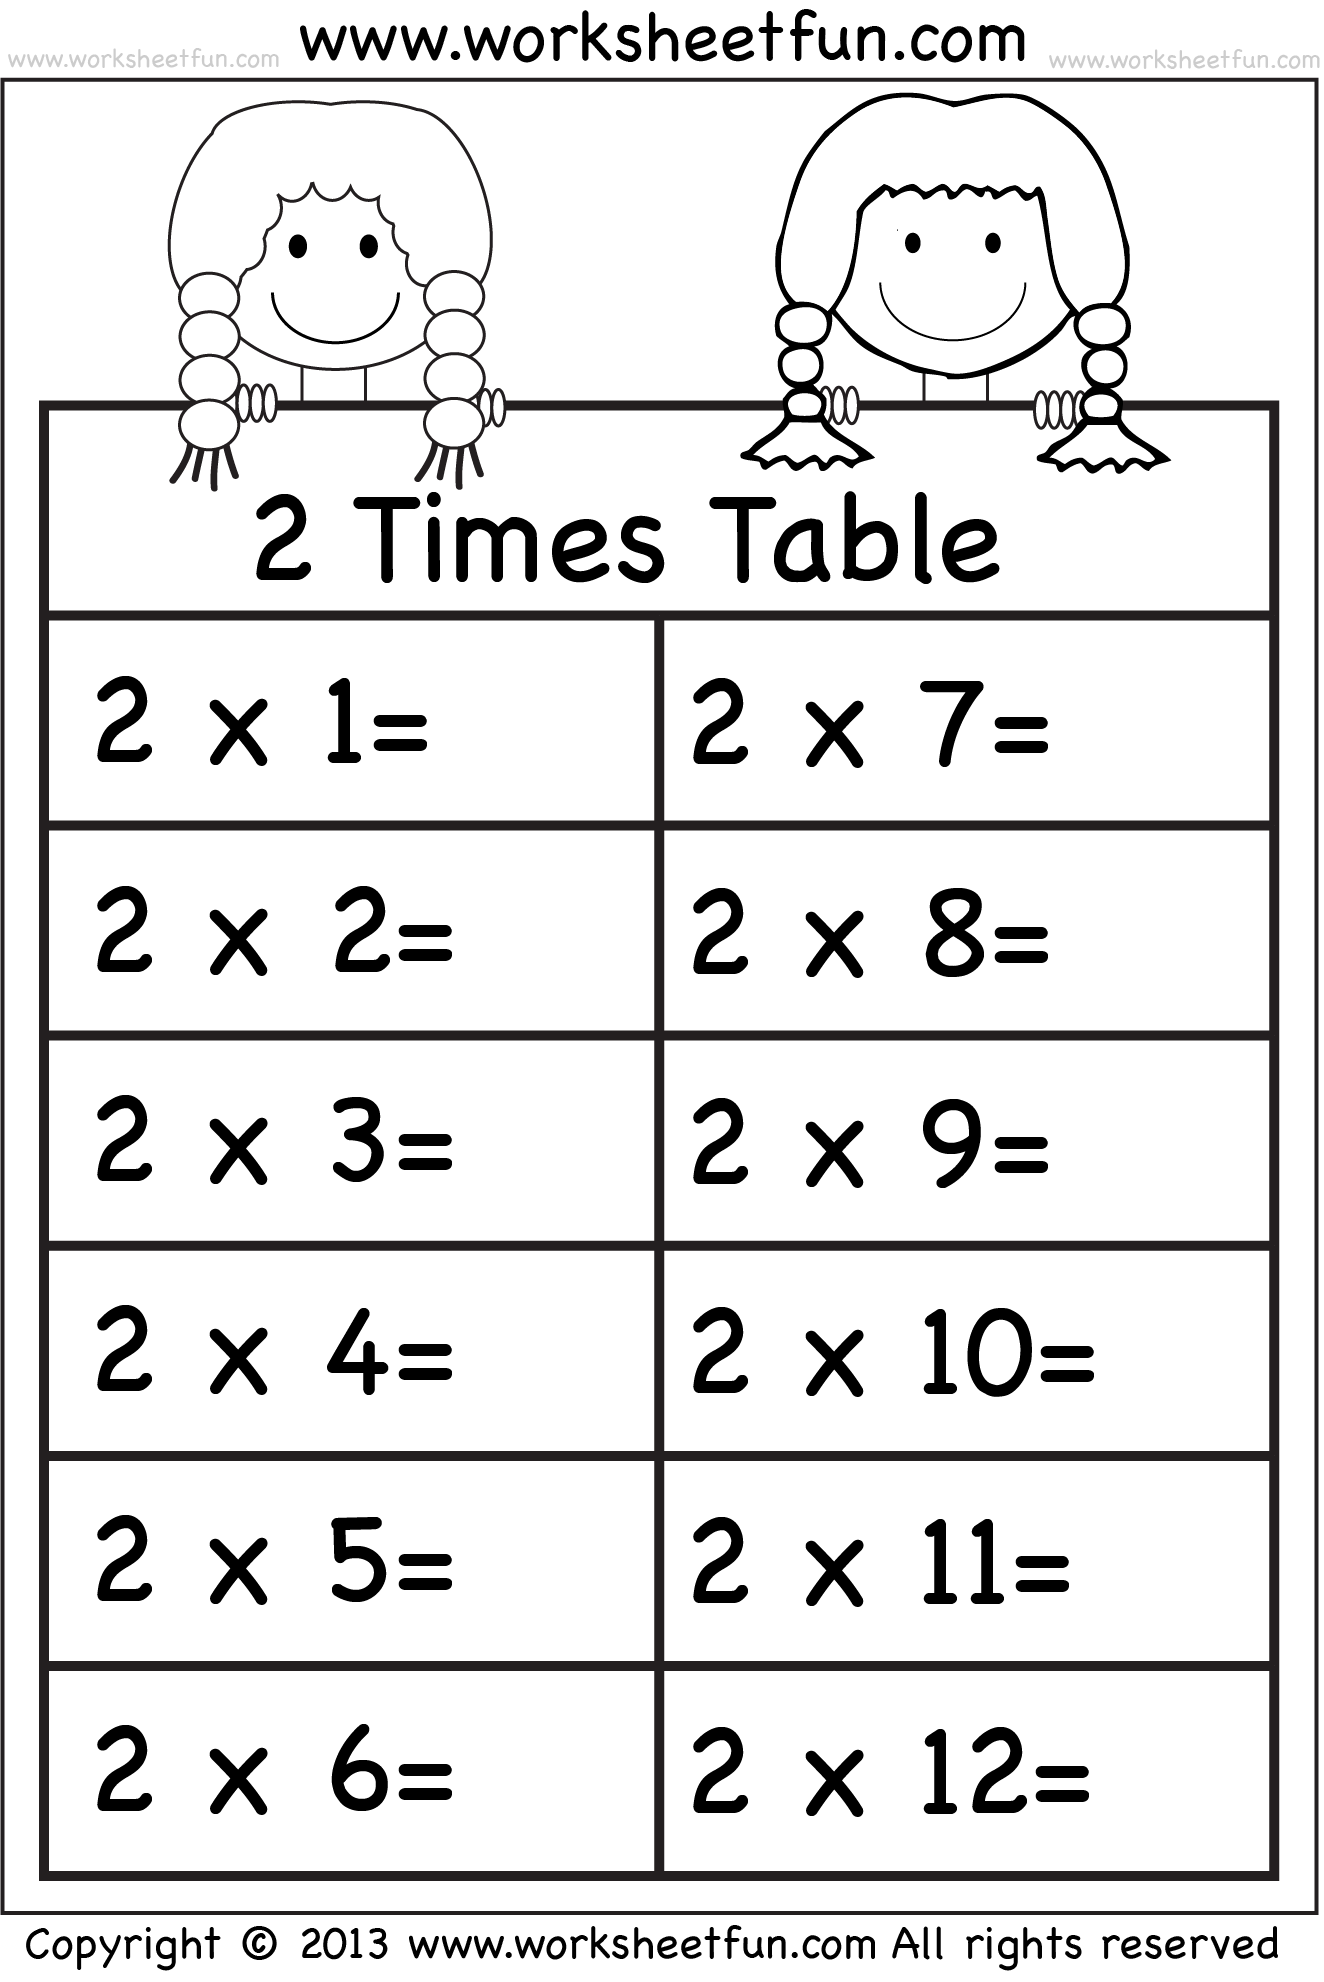 Luxury 2 X Tables Worksheets F80 On Simple Home Design Ideas With